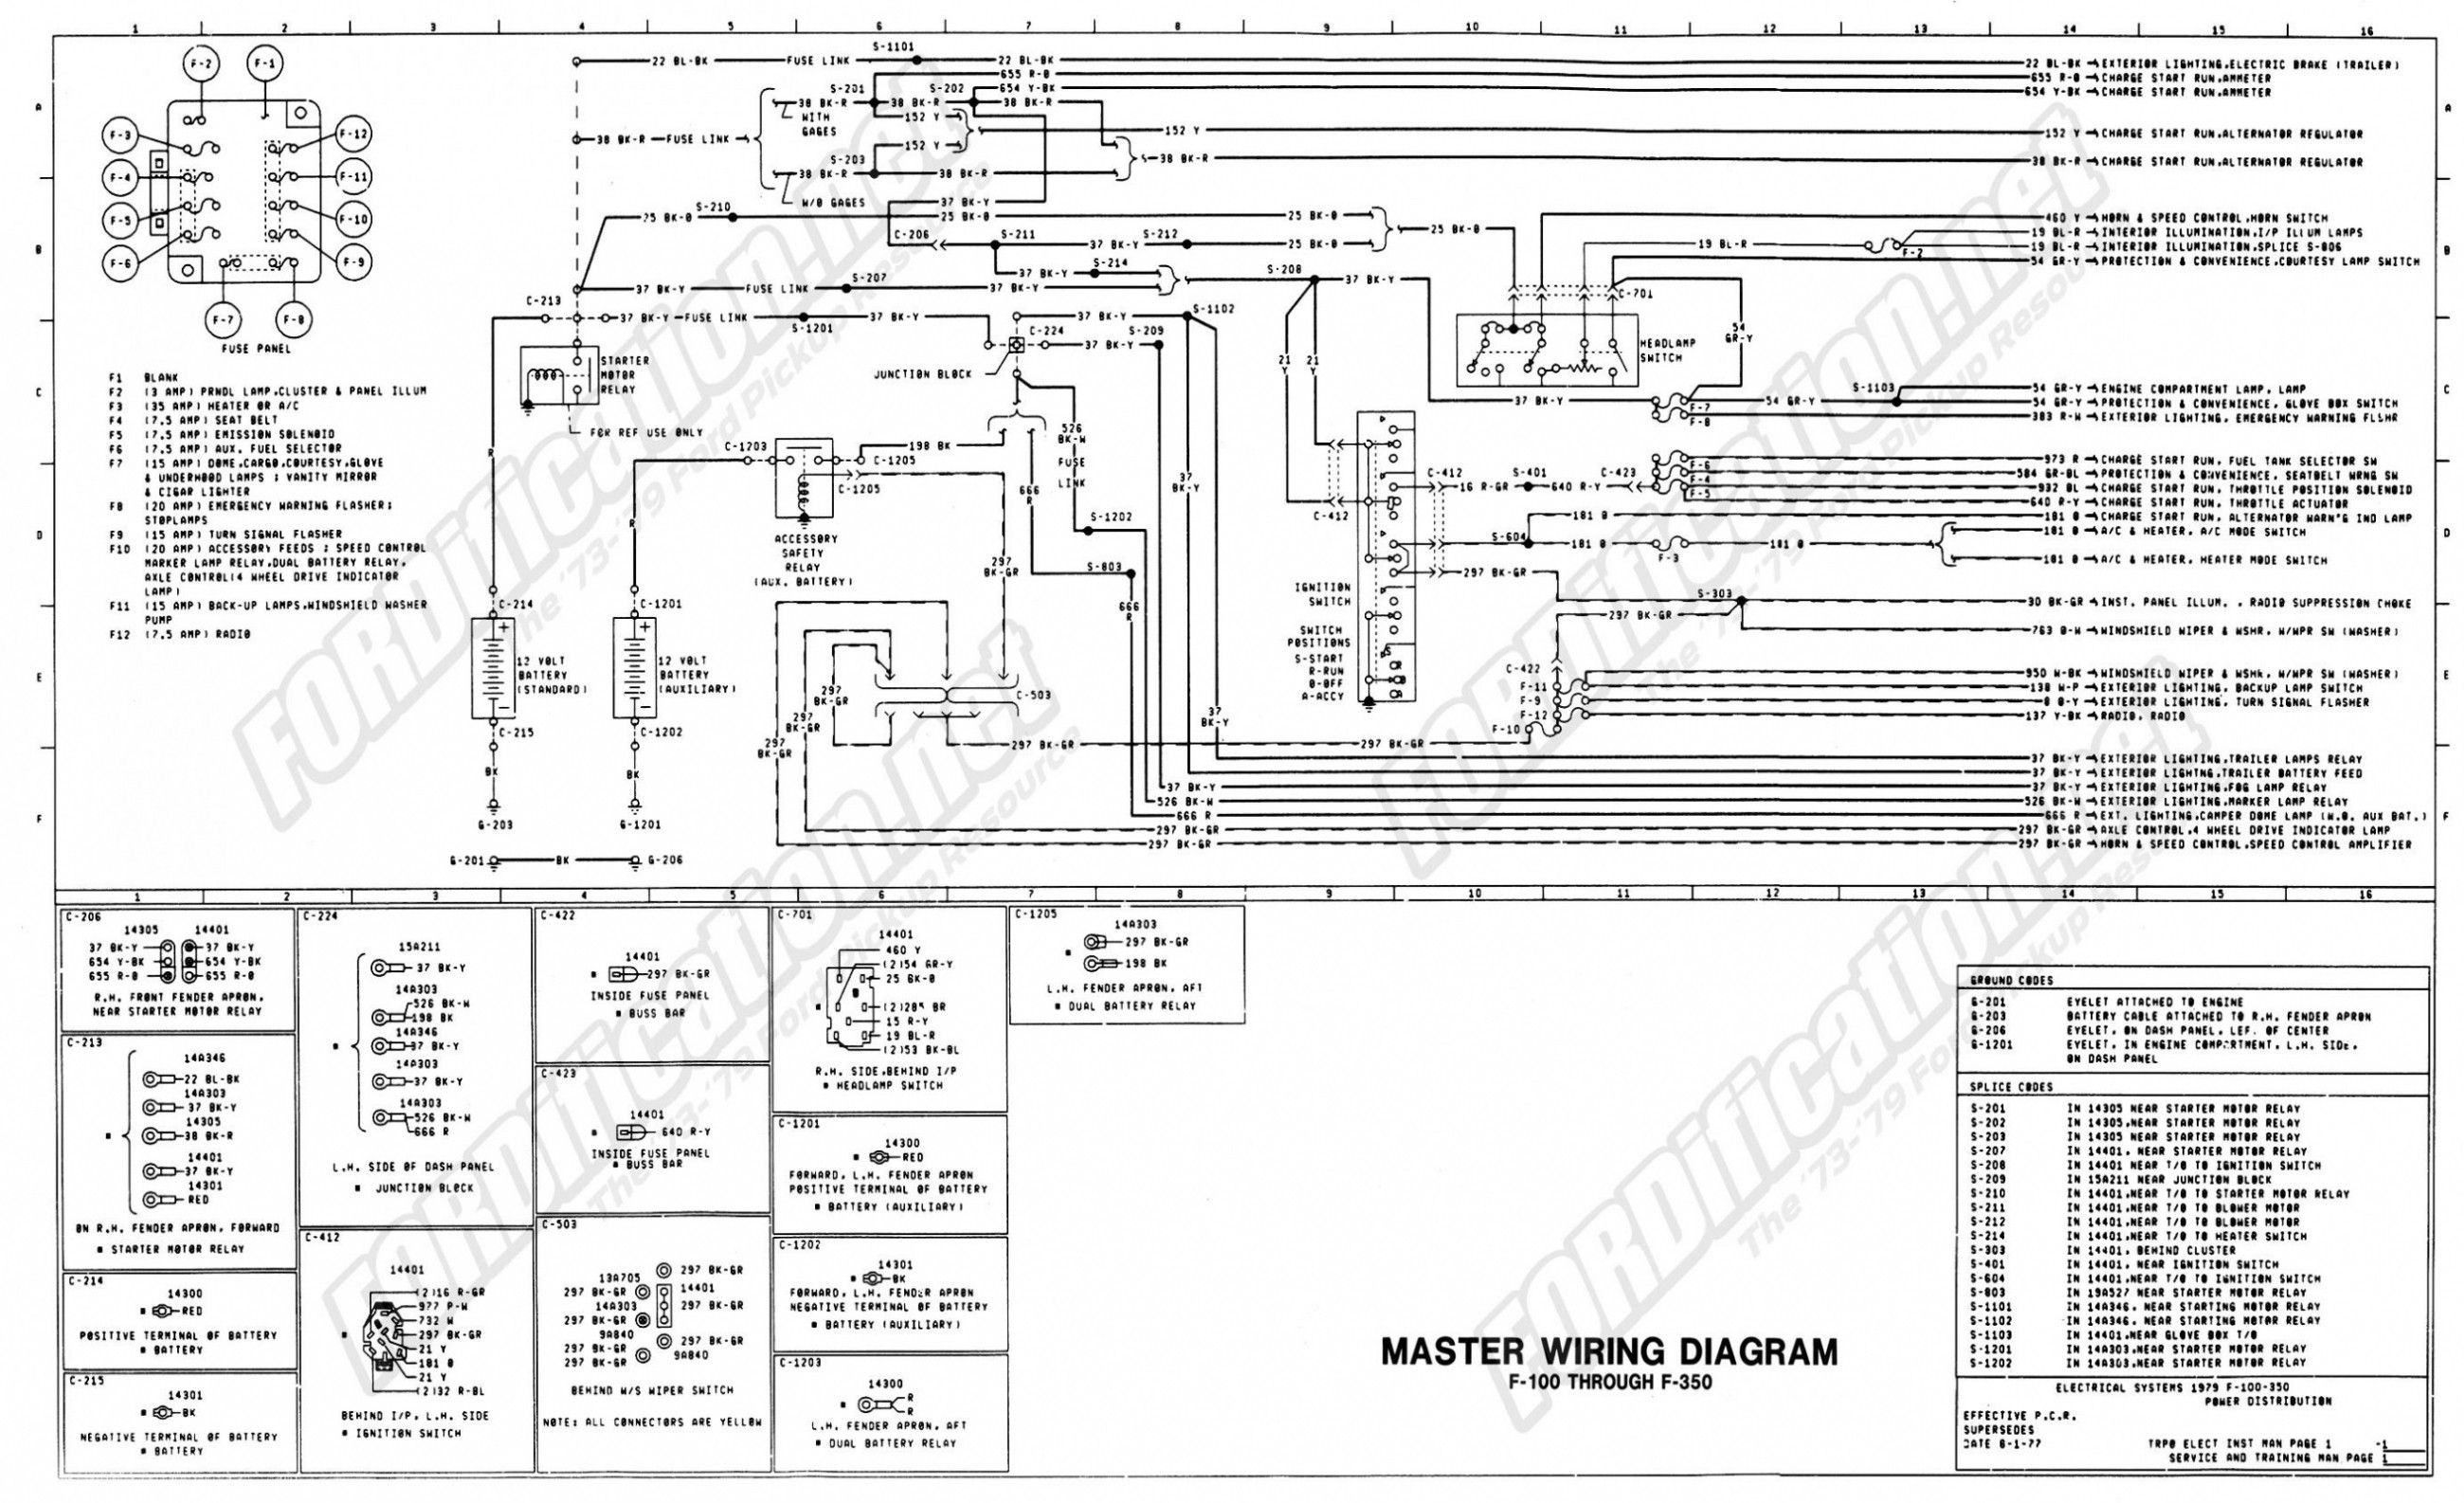 1991 ford F150 Engine Diagram Light Wiring Diagram for